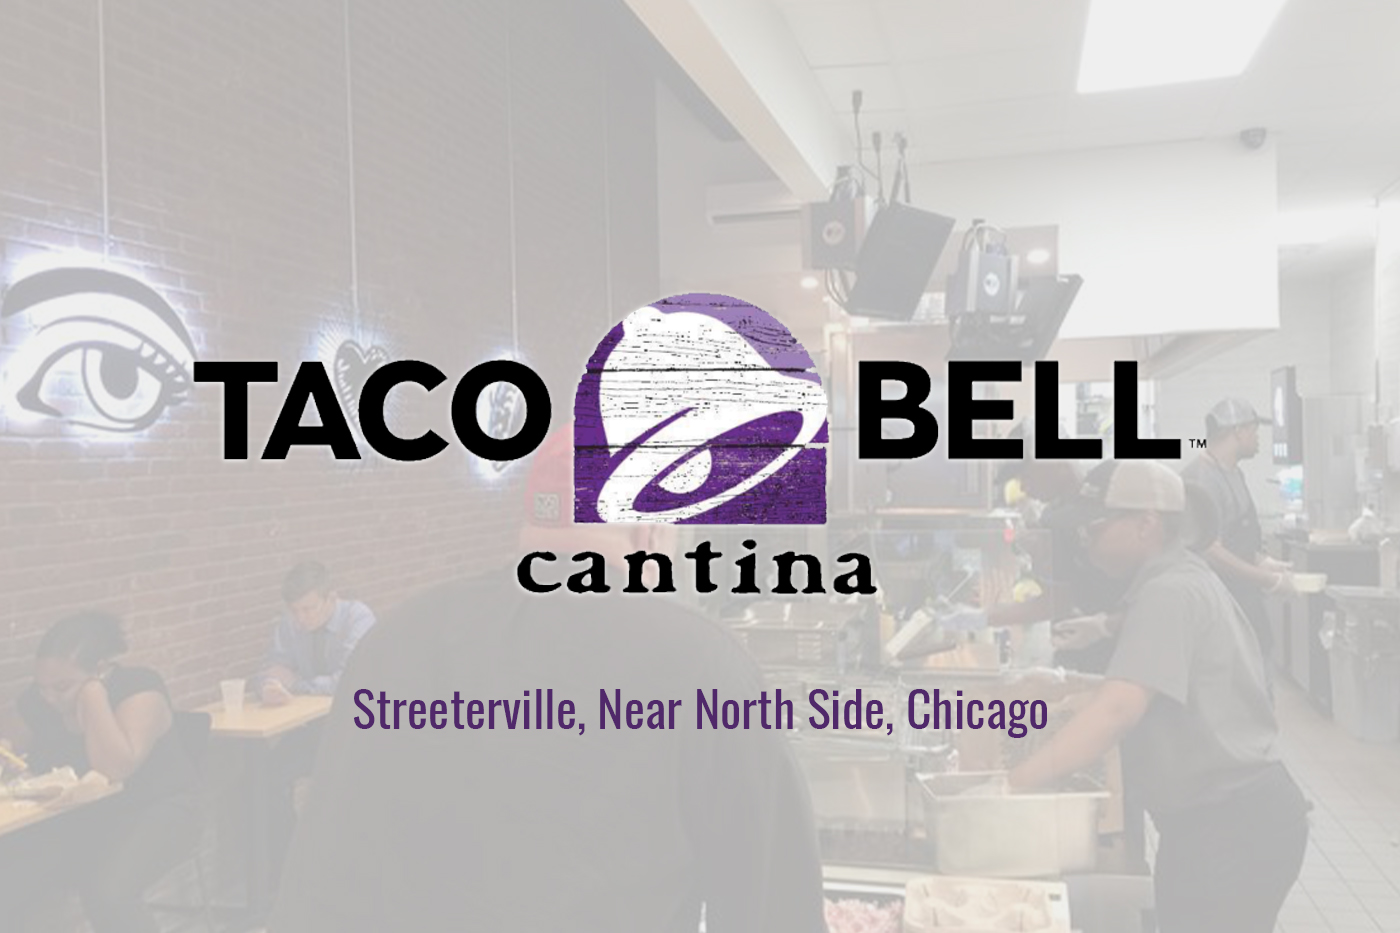 Nate Gautsche Recently Represented Several Restaurants Including Taco Bell Cantina, Burger King & Himalayan Restaurant